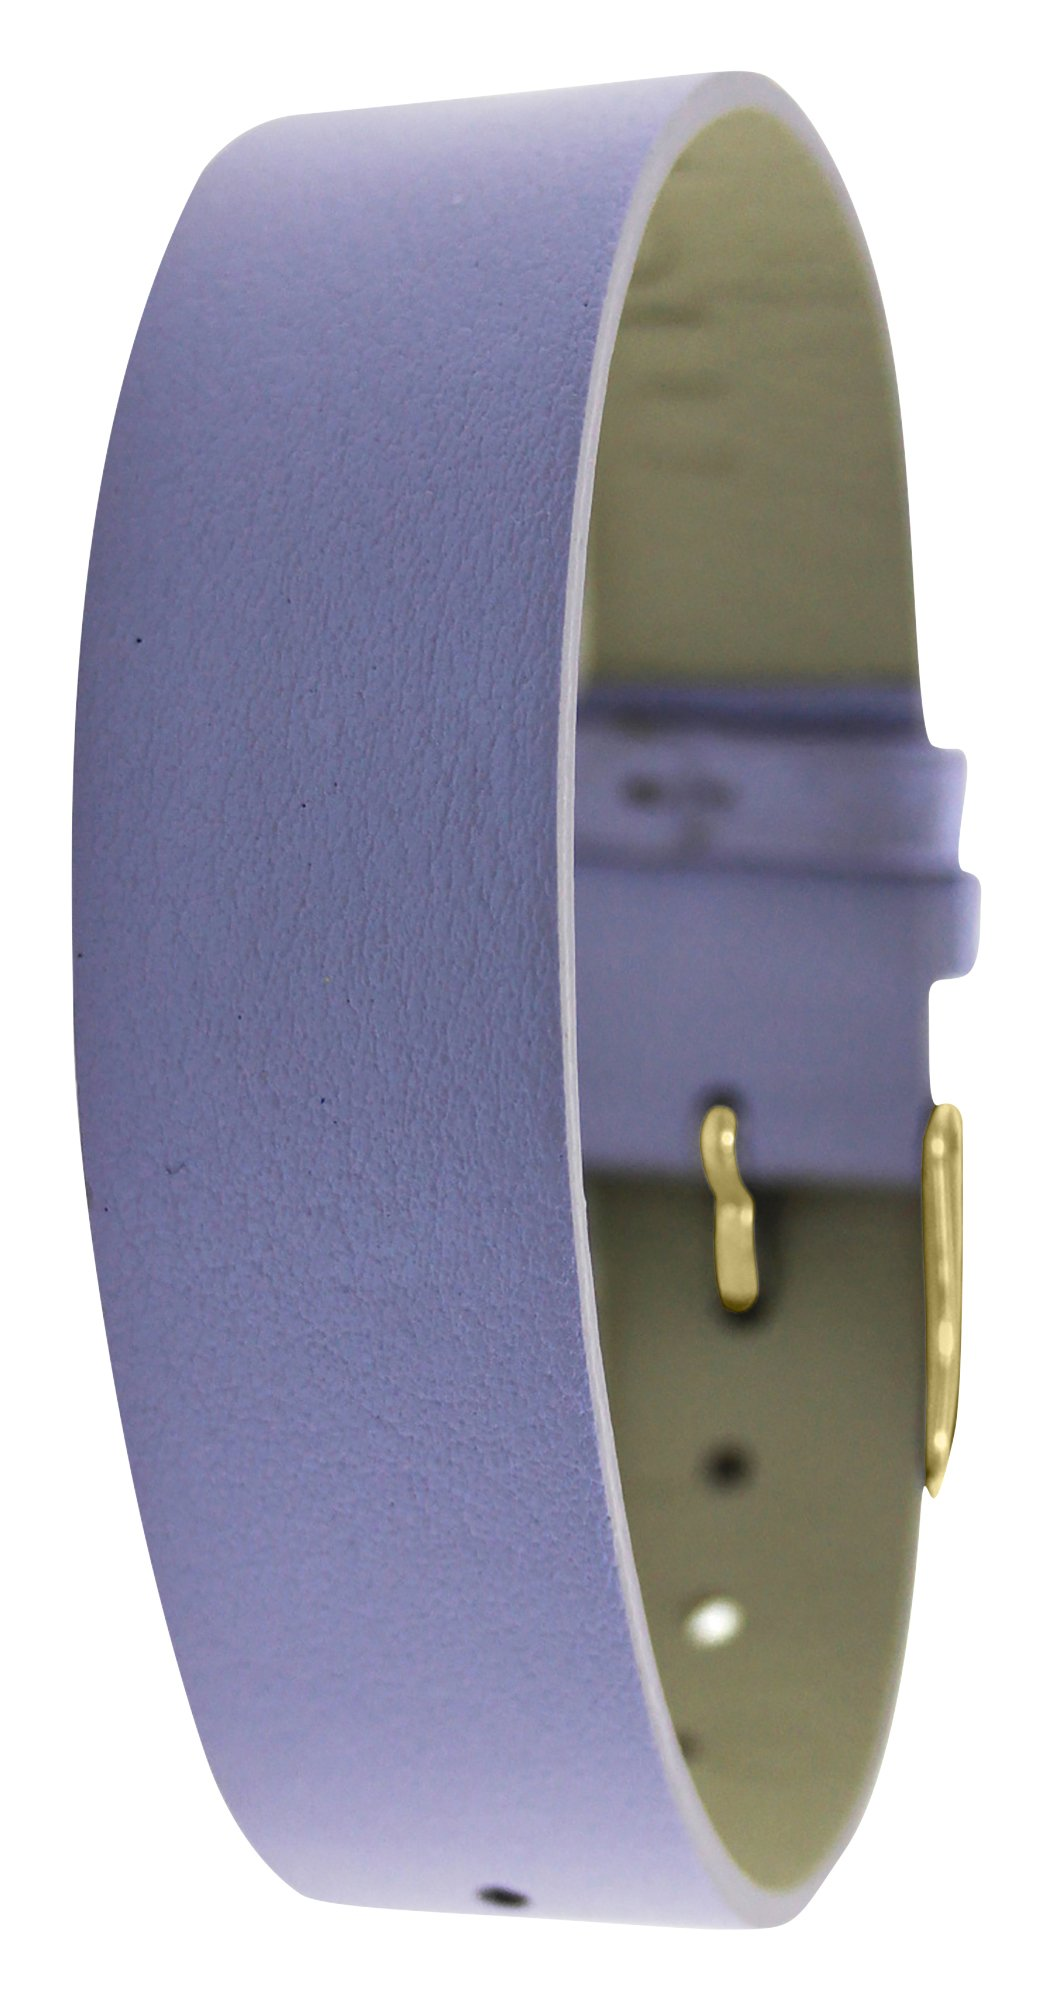 Moog Paris Purple Calf Leather Bracelet for Women, Pearly Pattern, Pin Clasp, 18mm Band - SC-05G